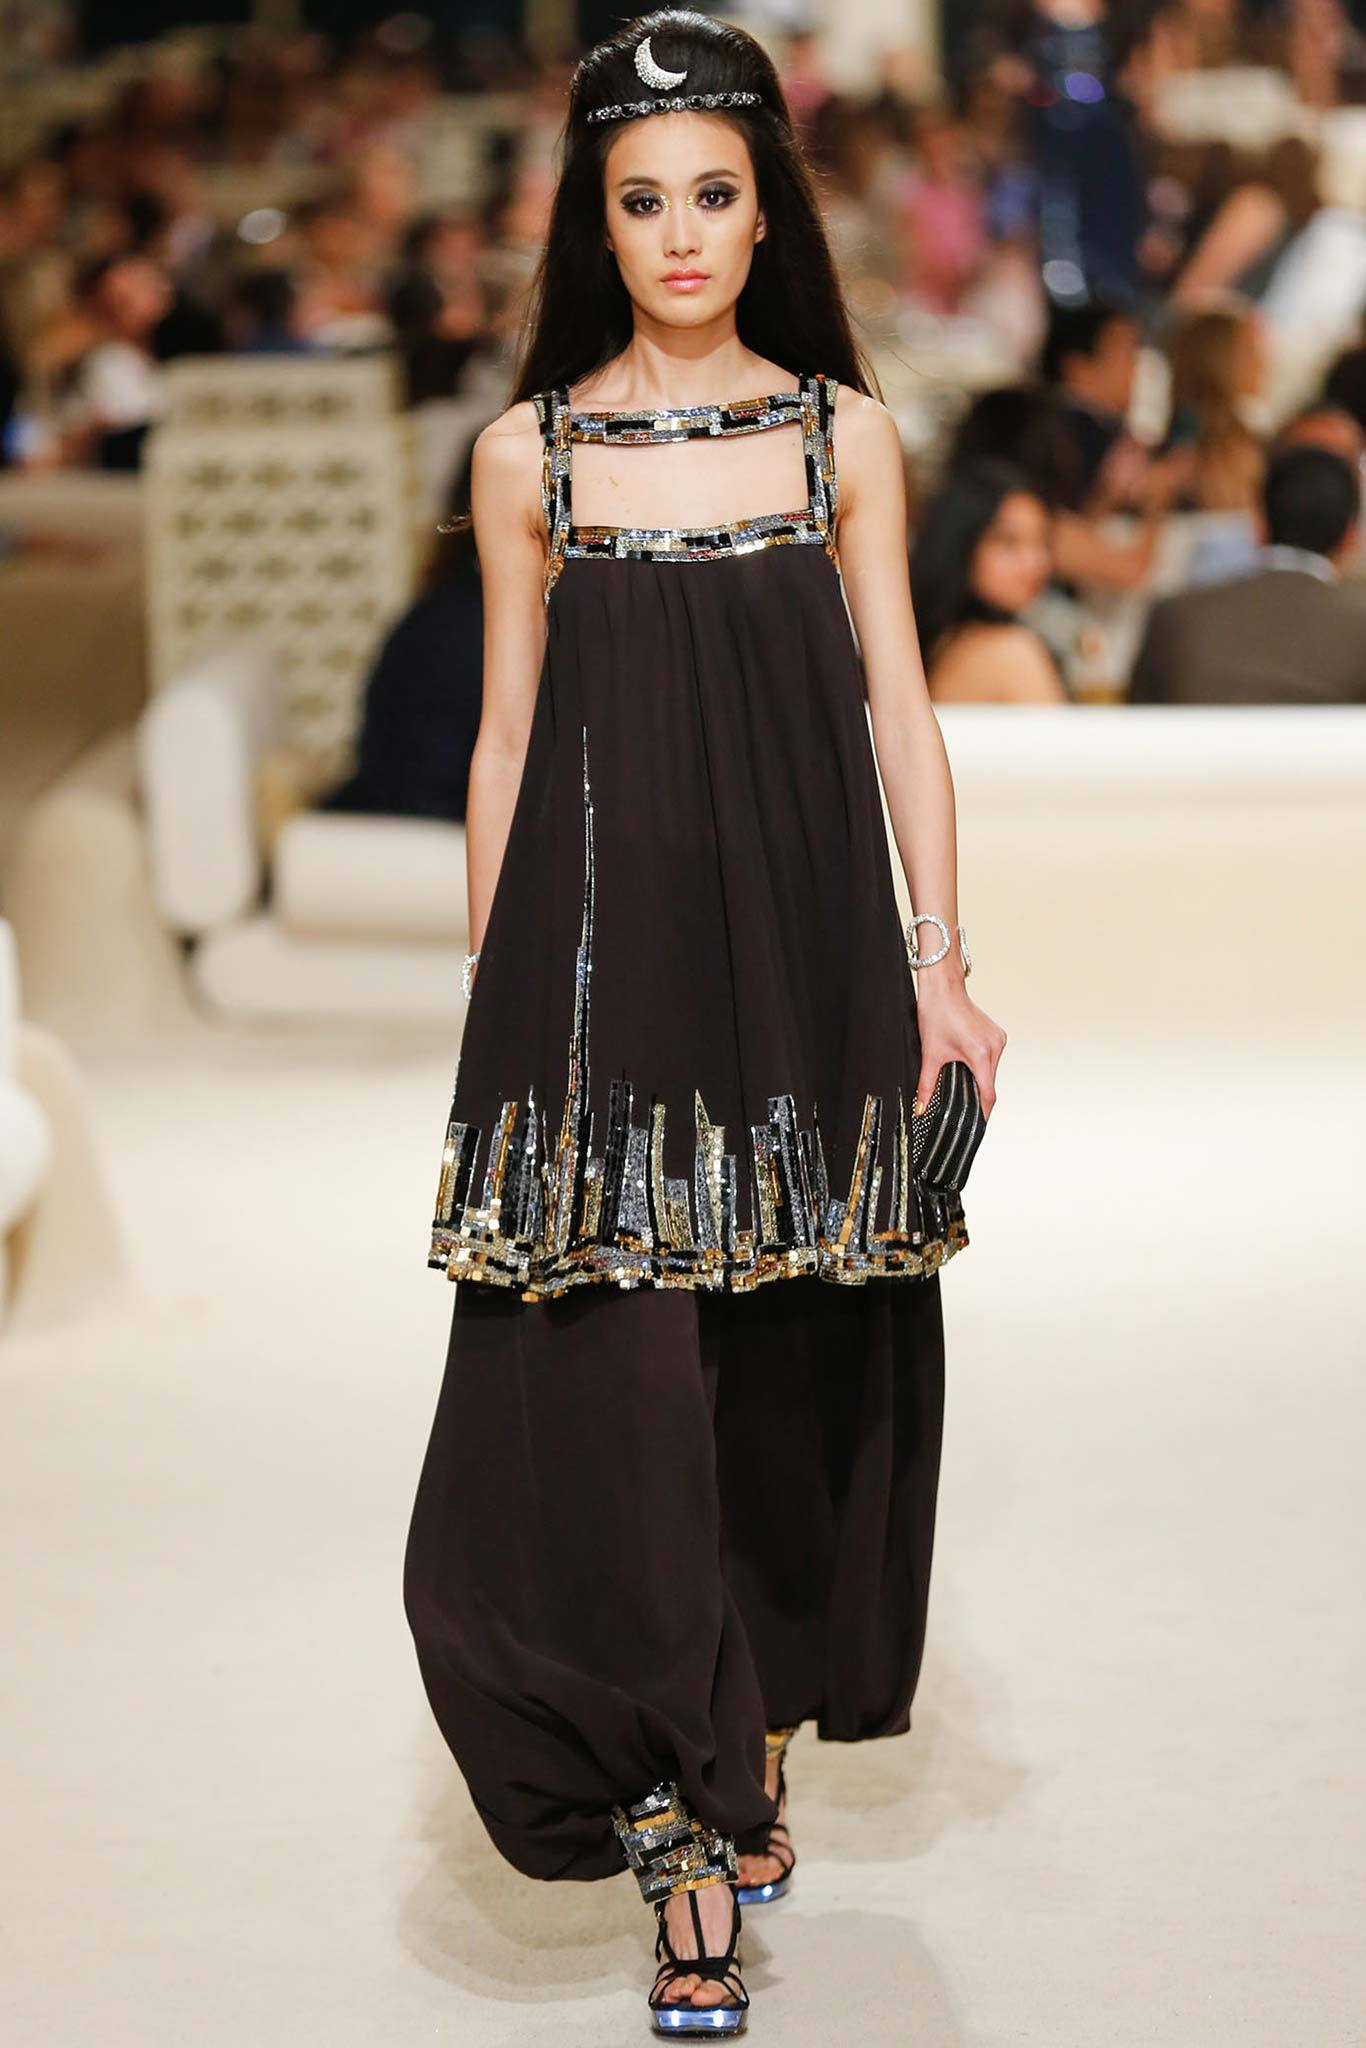 Shu-Pei Qin | Chanel Cruise 2015 (Photography: Gianni Pucci / Indigitalimages.com via Style.com)